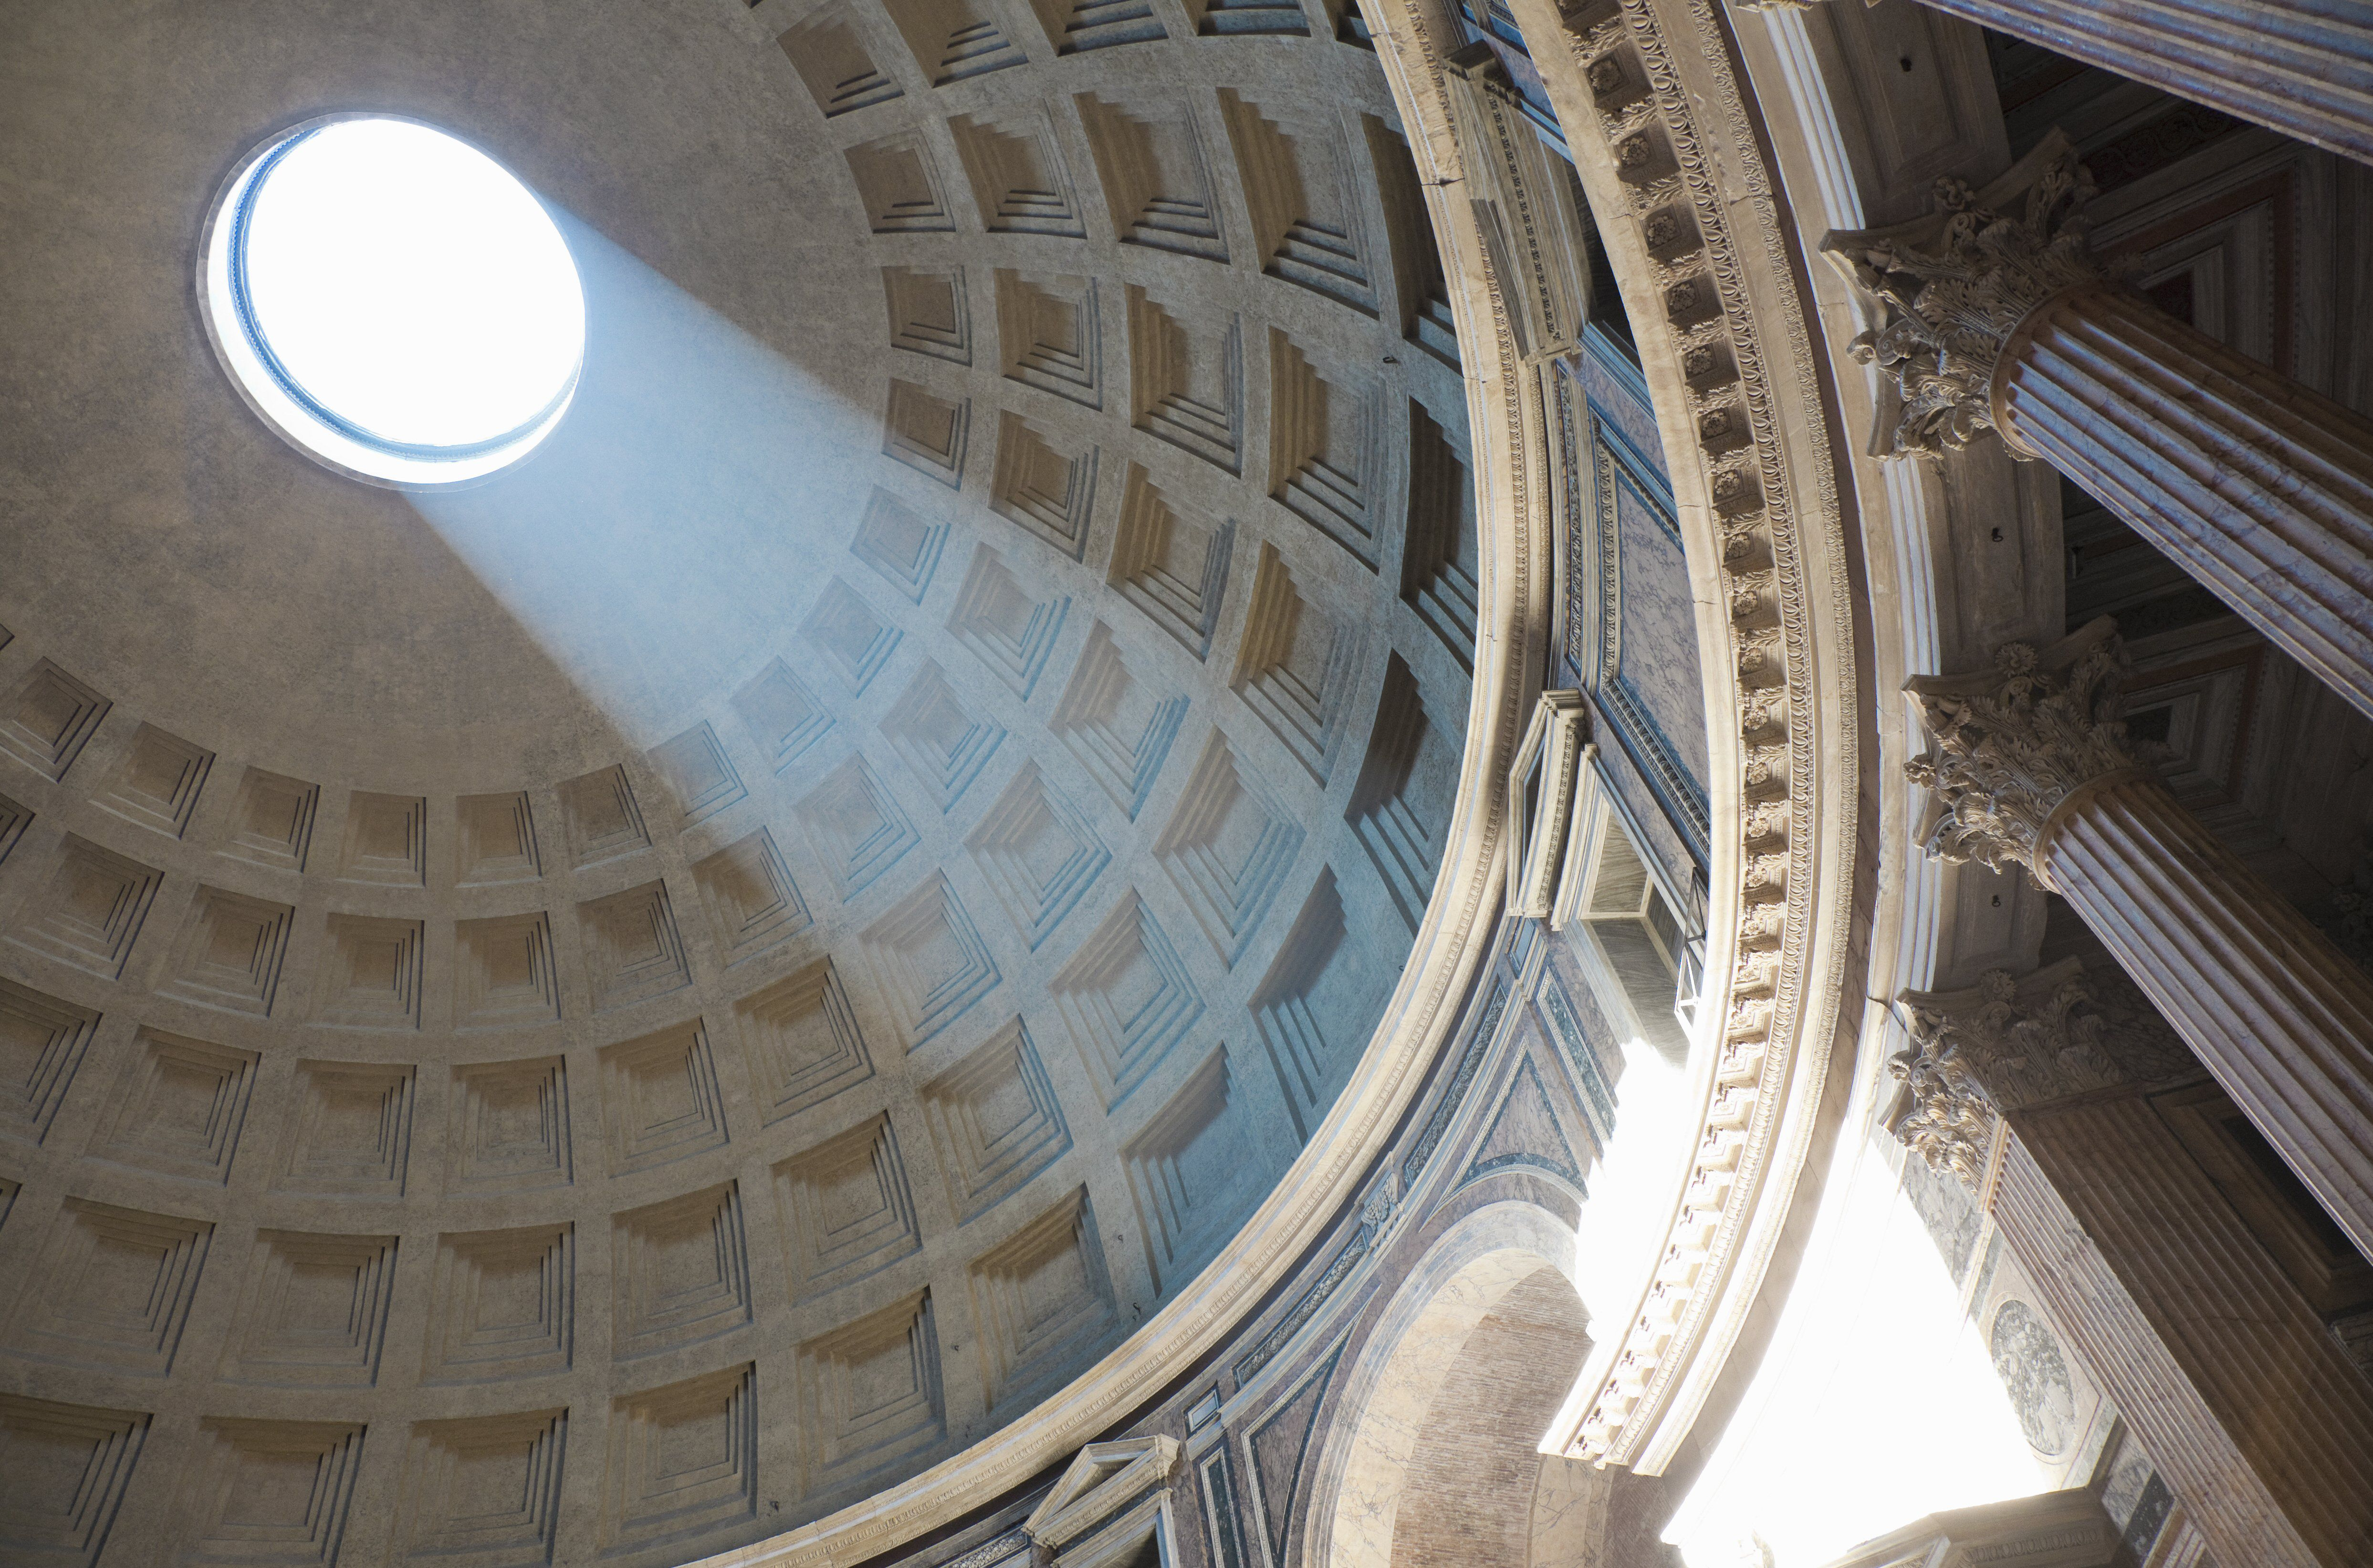 inside view of light shines through oculus, a large open hole at the top of a dome